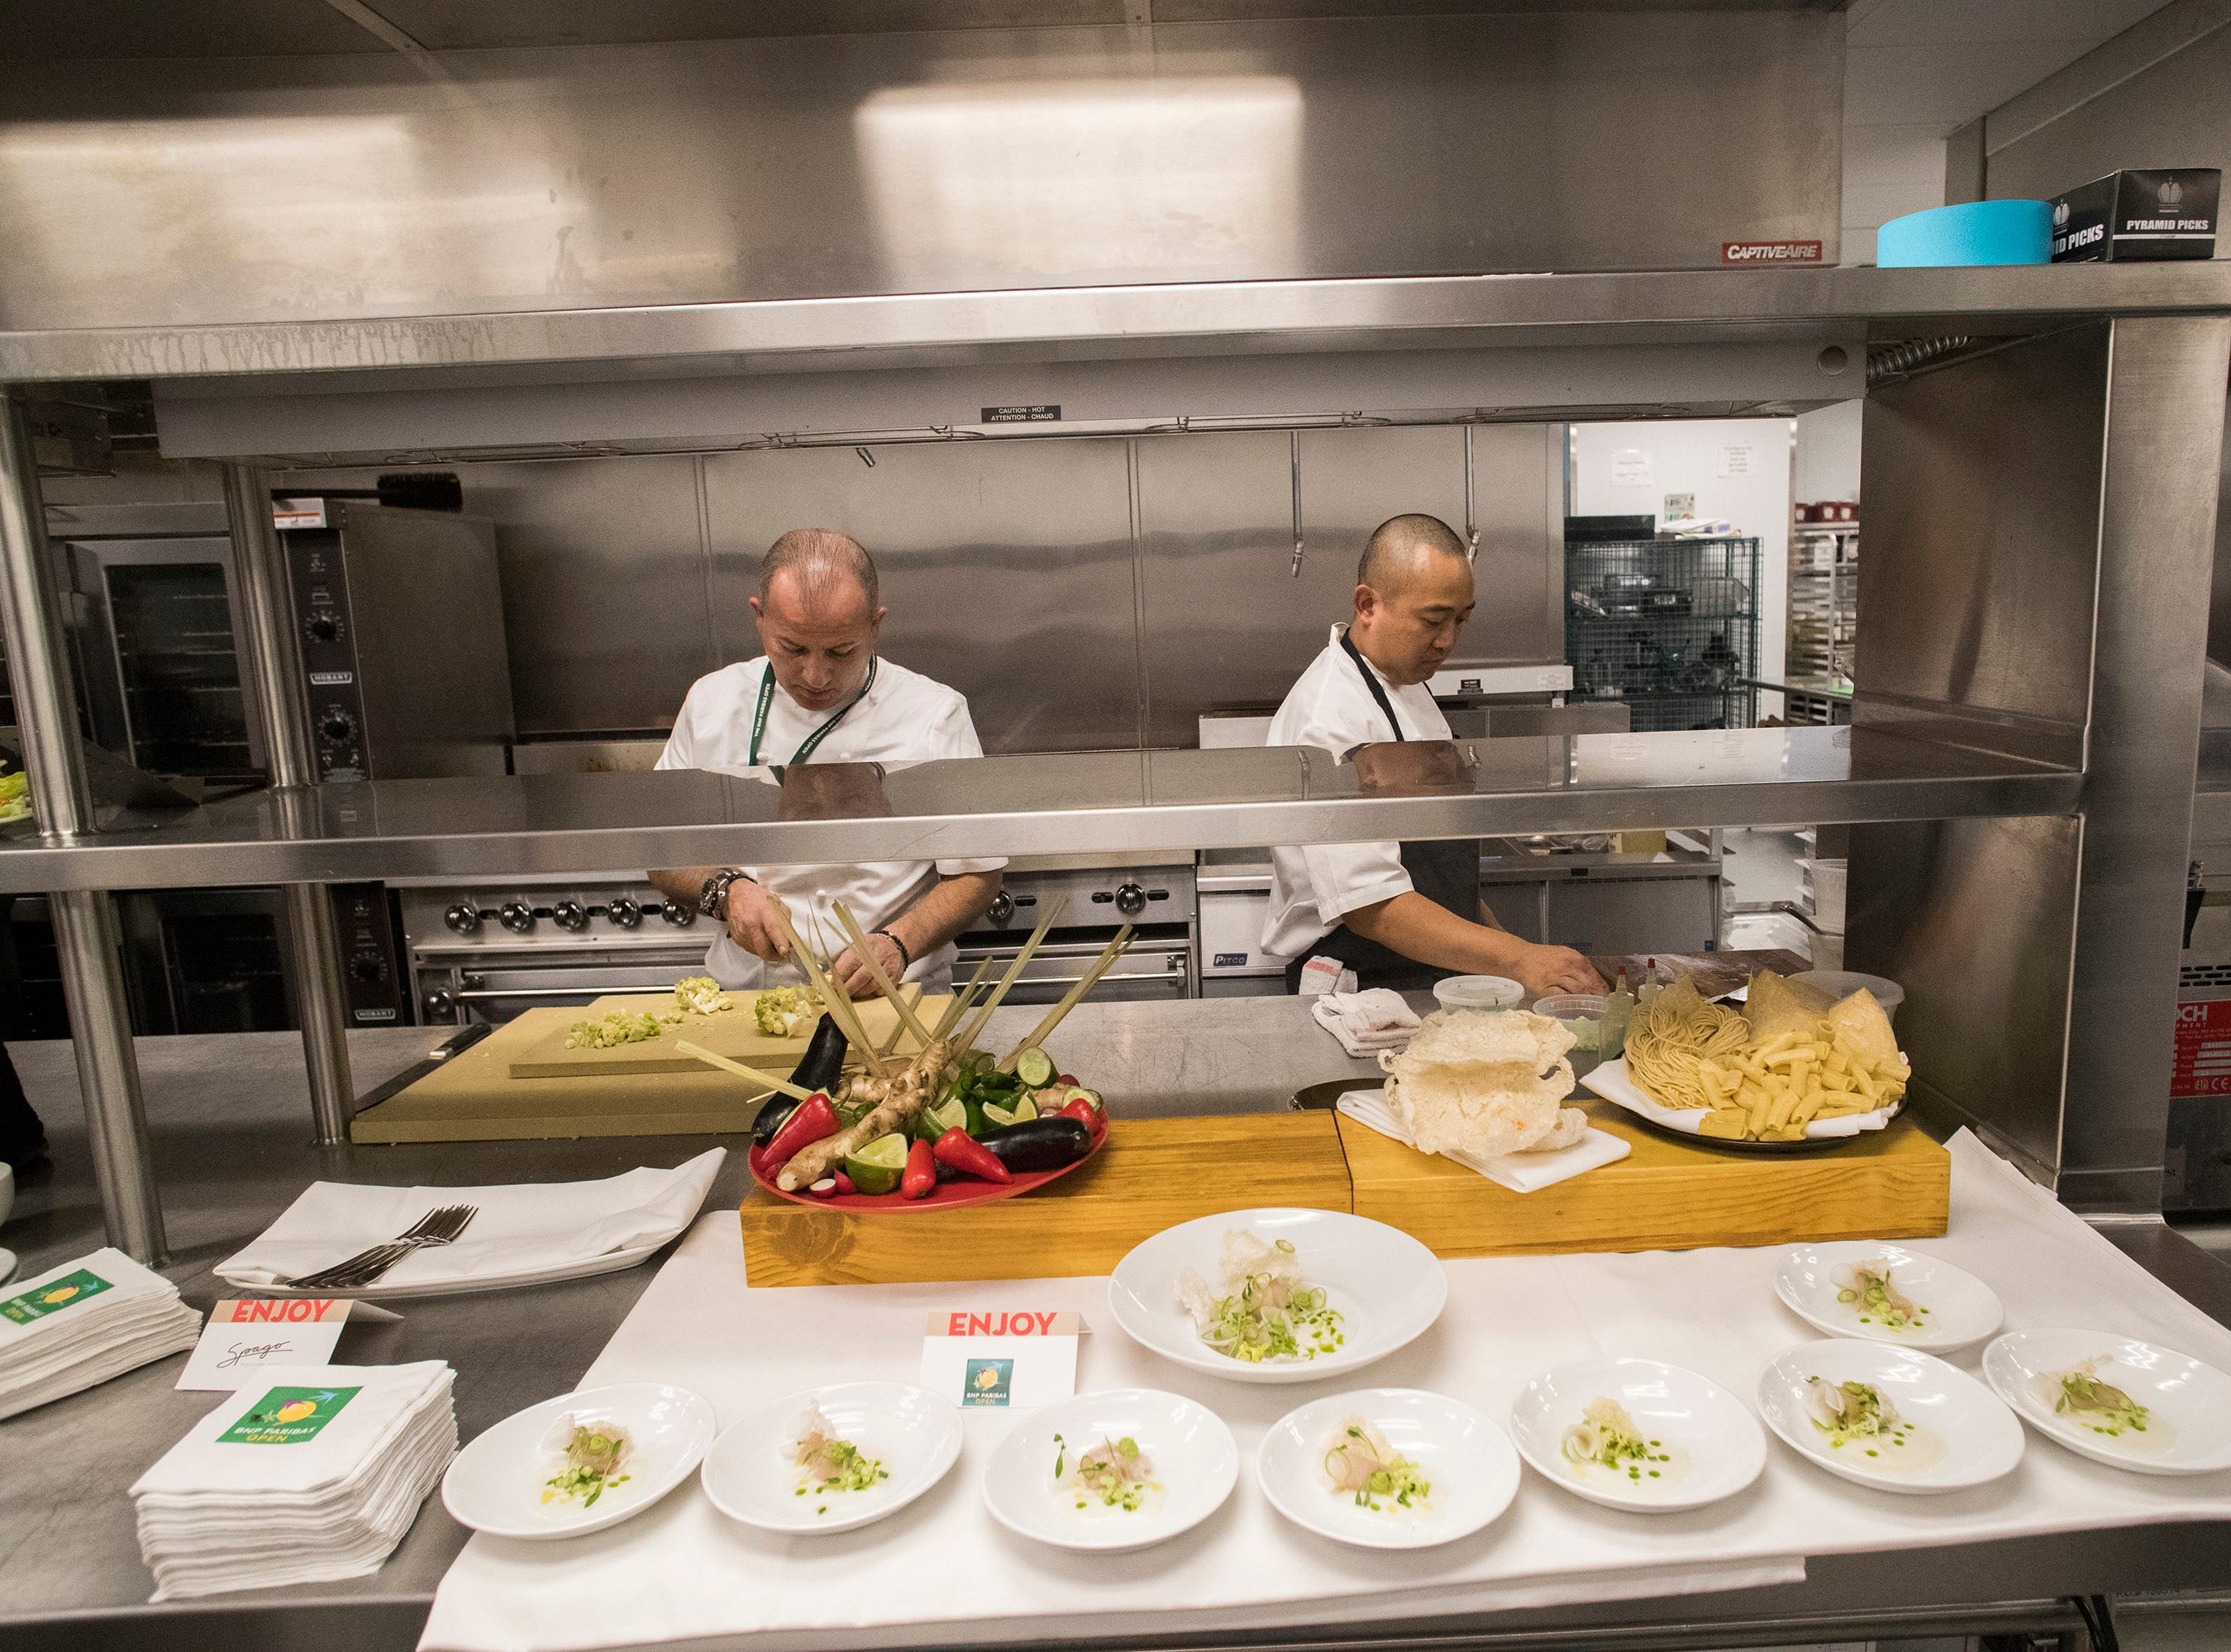 Spago restaurant offers food at the 2019 BNP Paribas Open at the Indian Wells Tennis Garden.